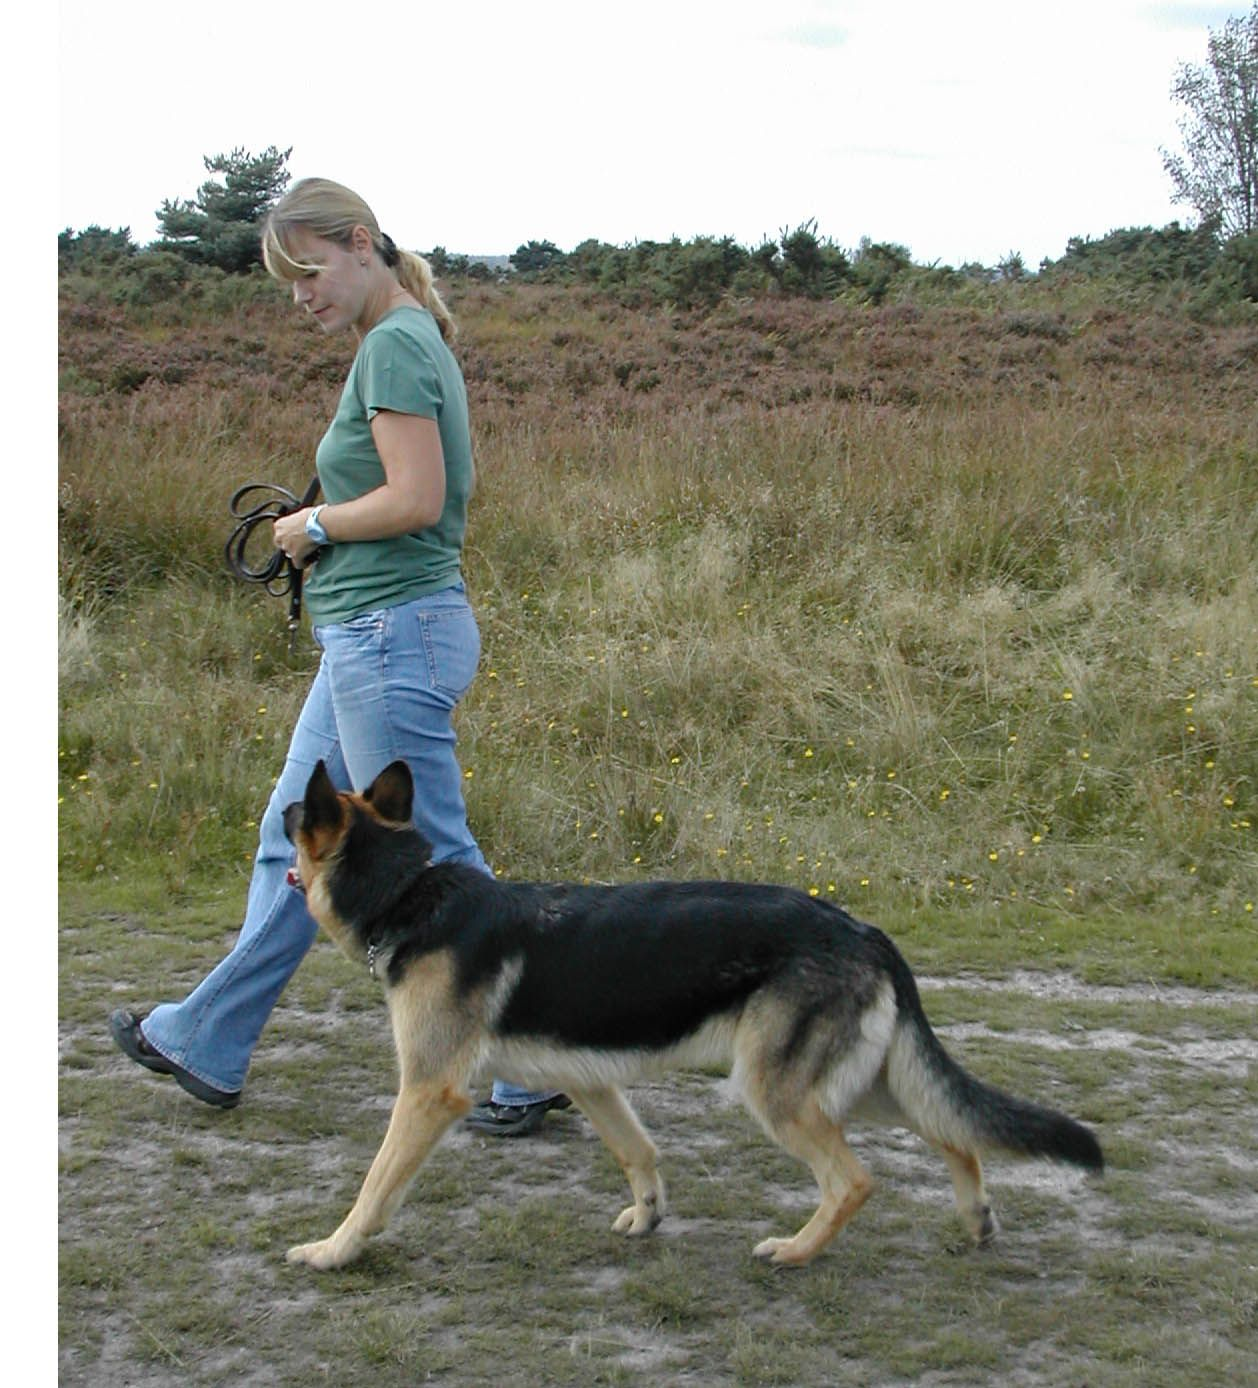 Gsd Cassis Training Your Dog Your Dog Dogs